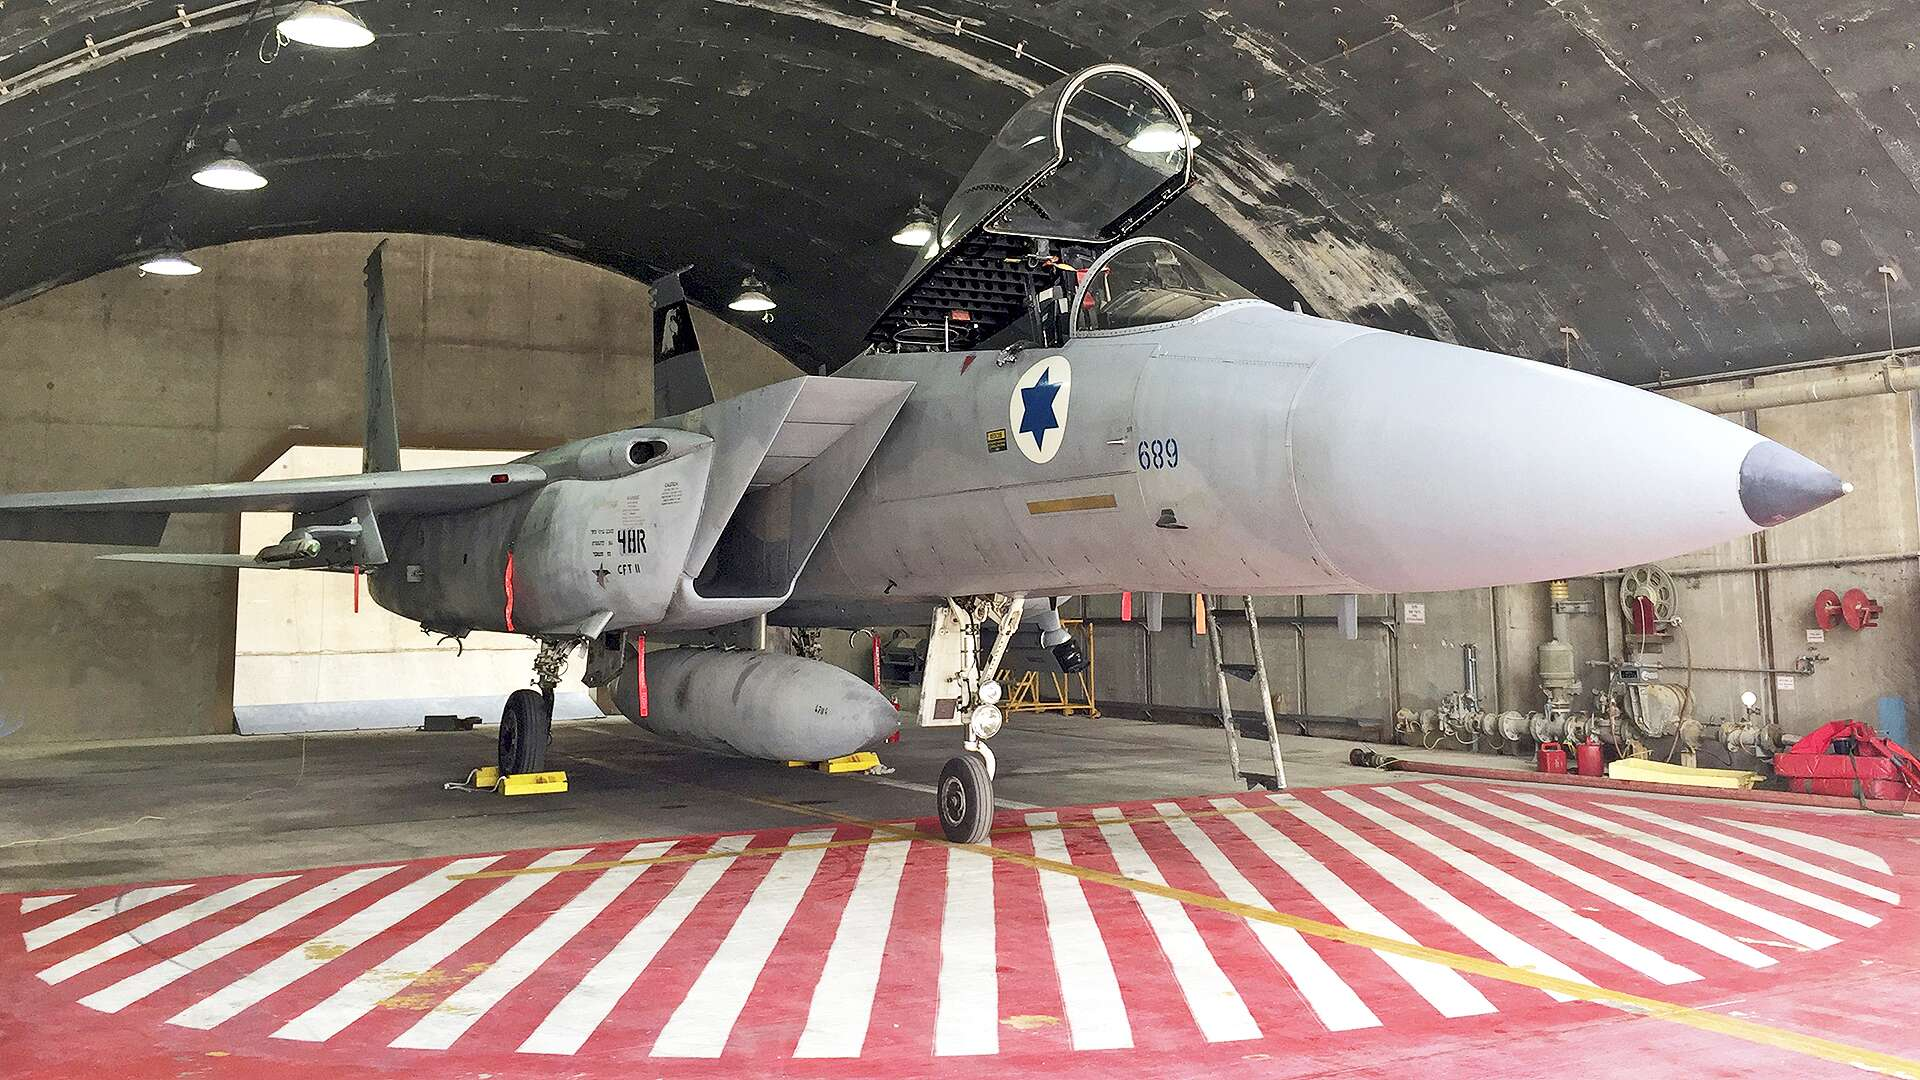 Israel Is Treating America's Throwaway F-15D Eagles As New Found Treasure ?q=60&url=https%3A%2F%2Fs3.amazonaws.com%2Fthe-drive-staging%2Fmessage-editor%252F1513724340455-nnhahd21313131